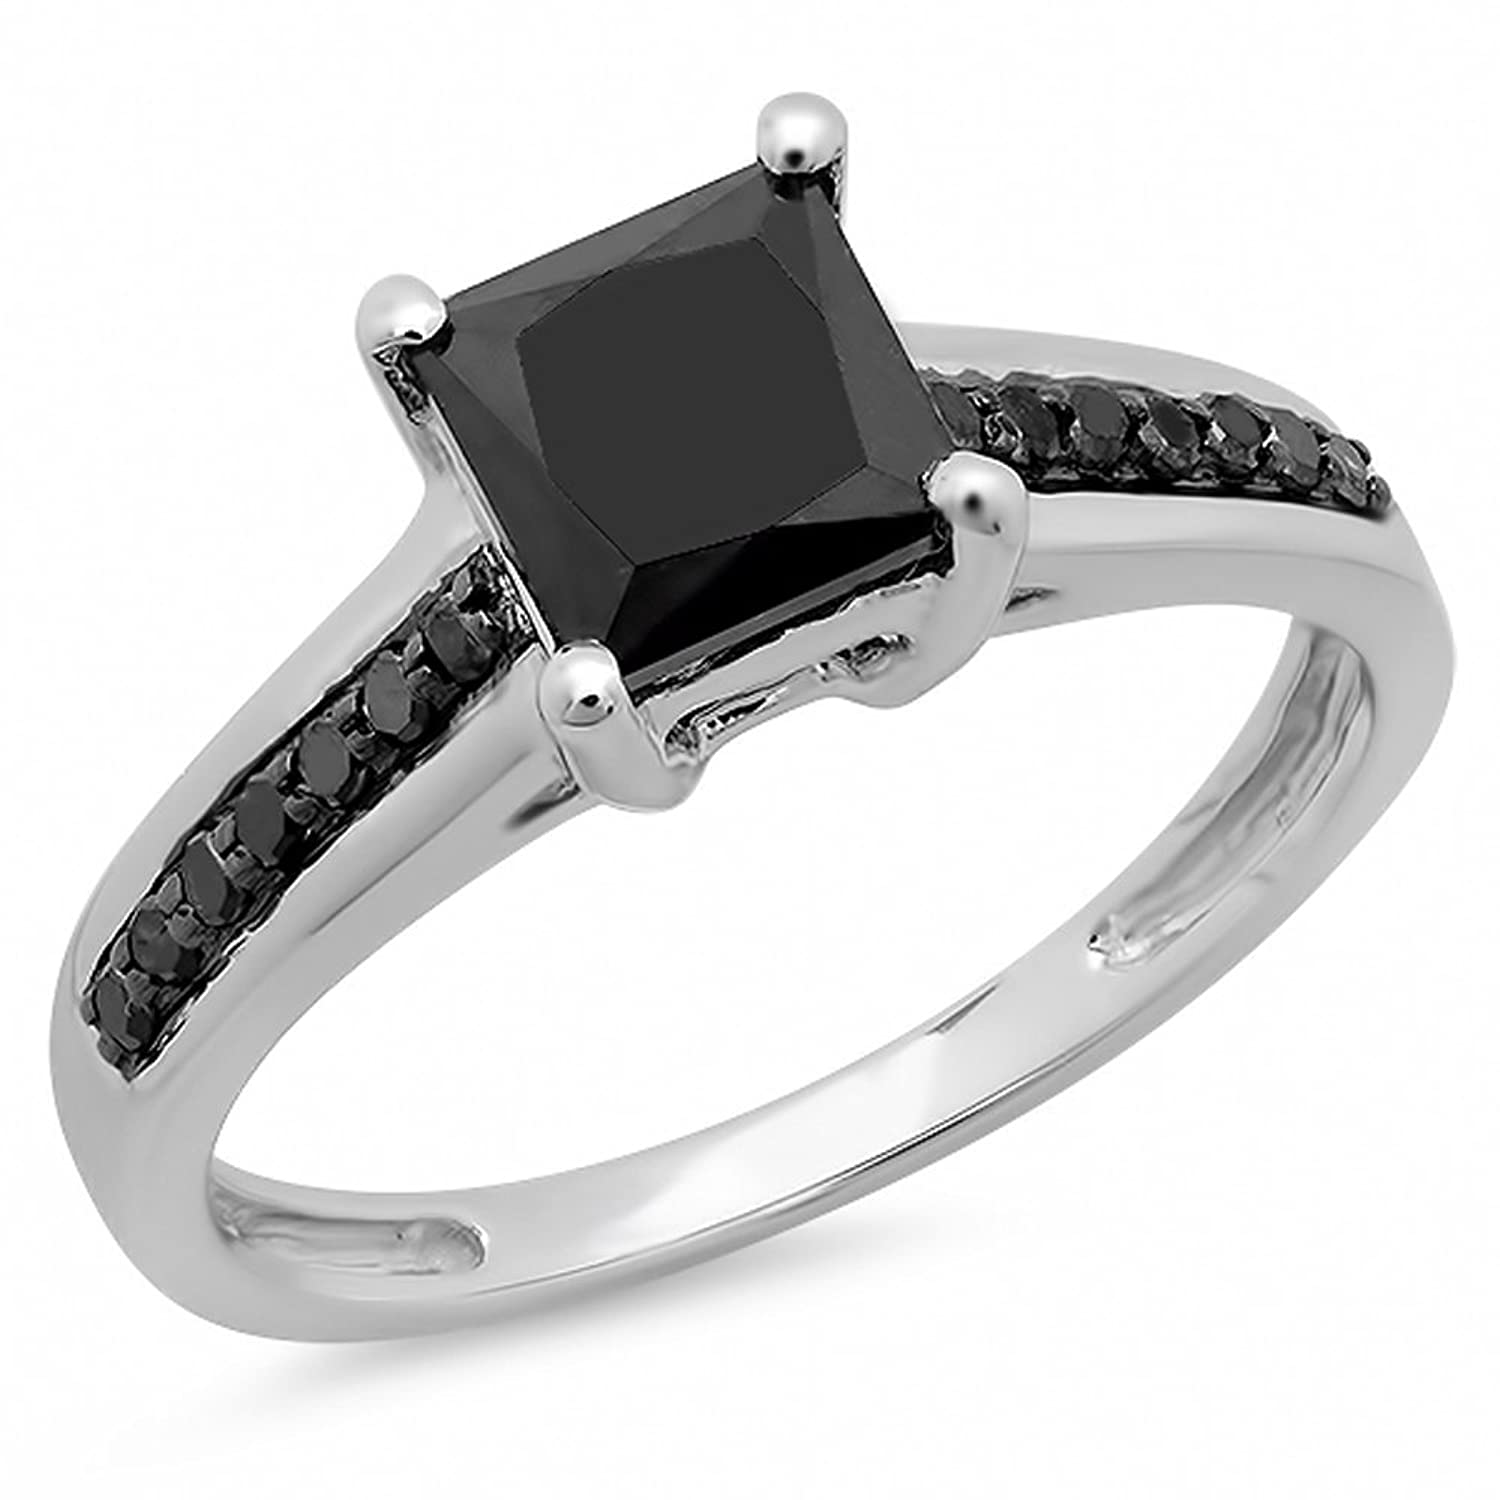 1 60 Carat ctw 14K White Gold Princess & Round Black Diamond